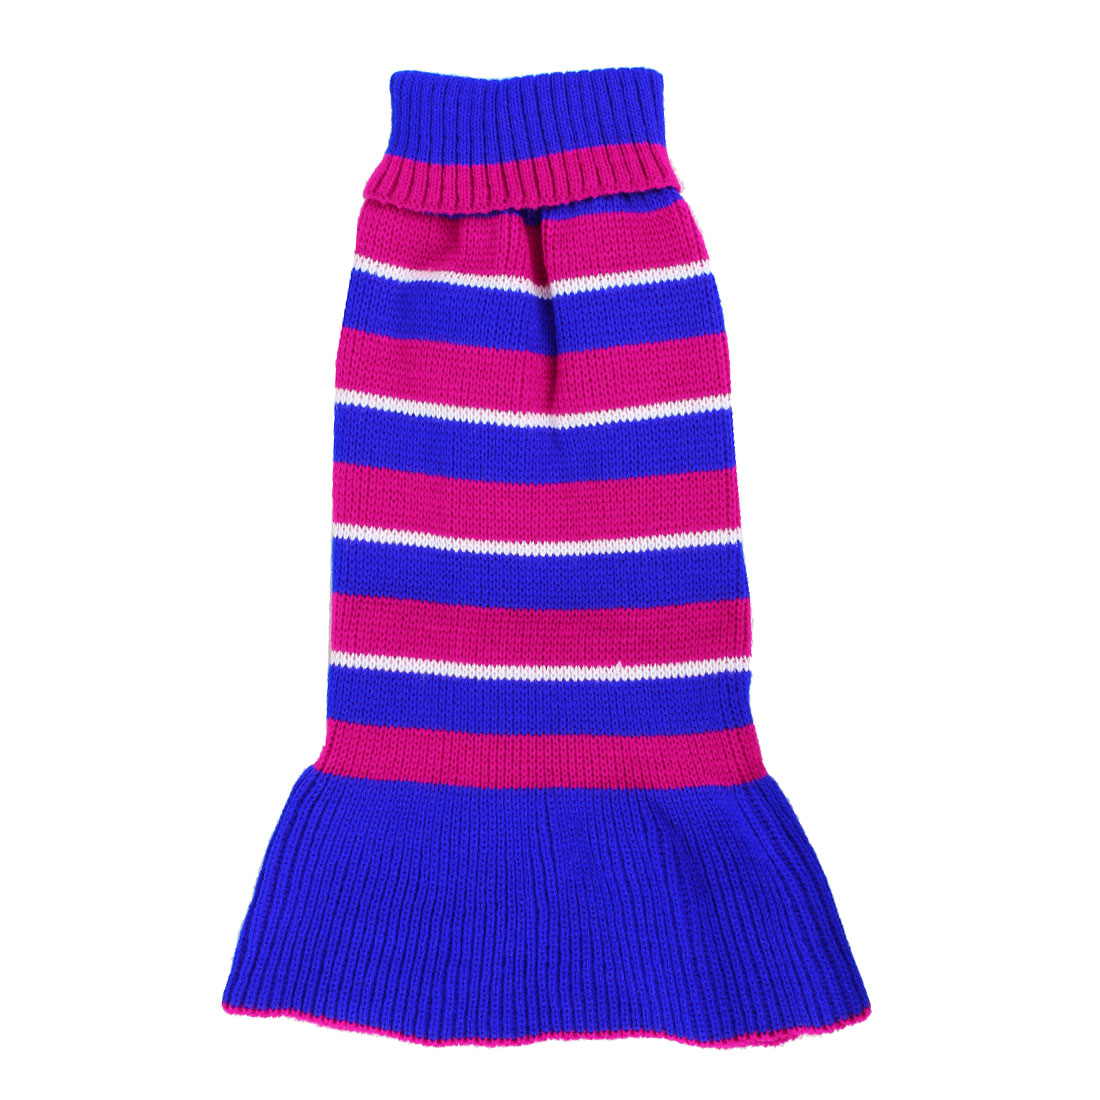 Pet Dog Poodle Fuchsia Blue Stripe Pattern Ribbed Hem Knitwear Turtleneck Dress Apparel Sweater Size M